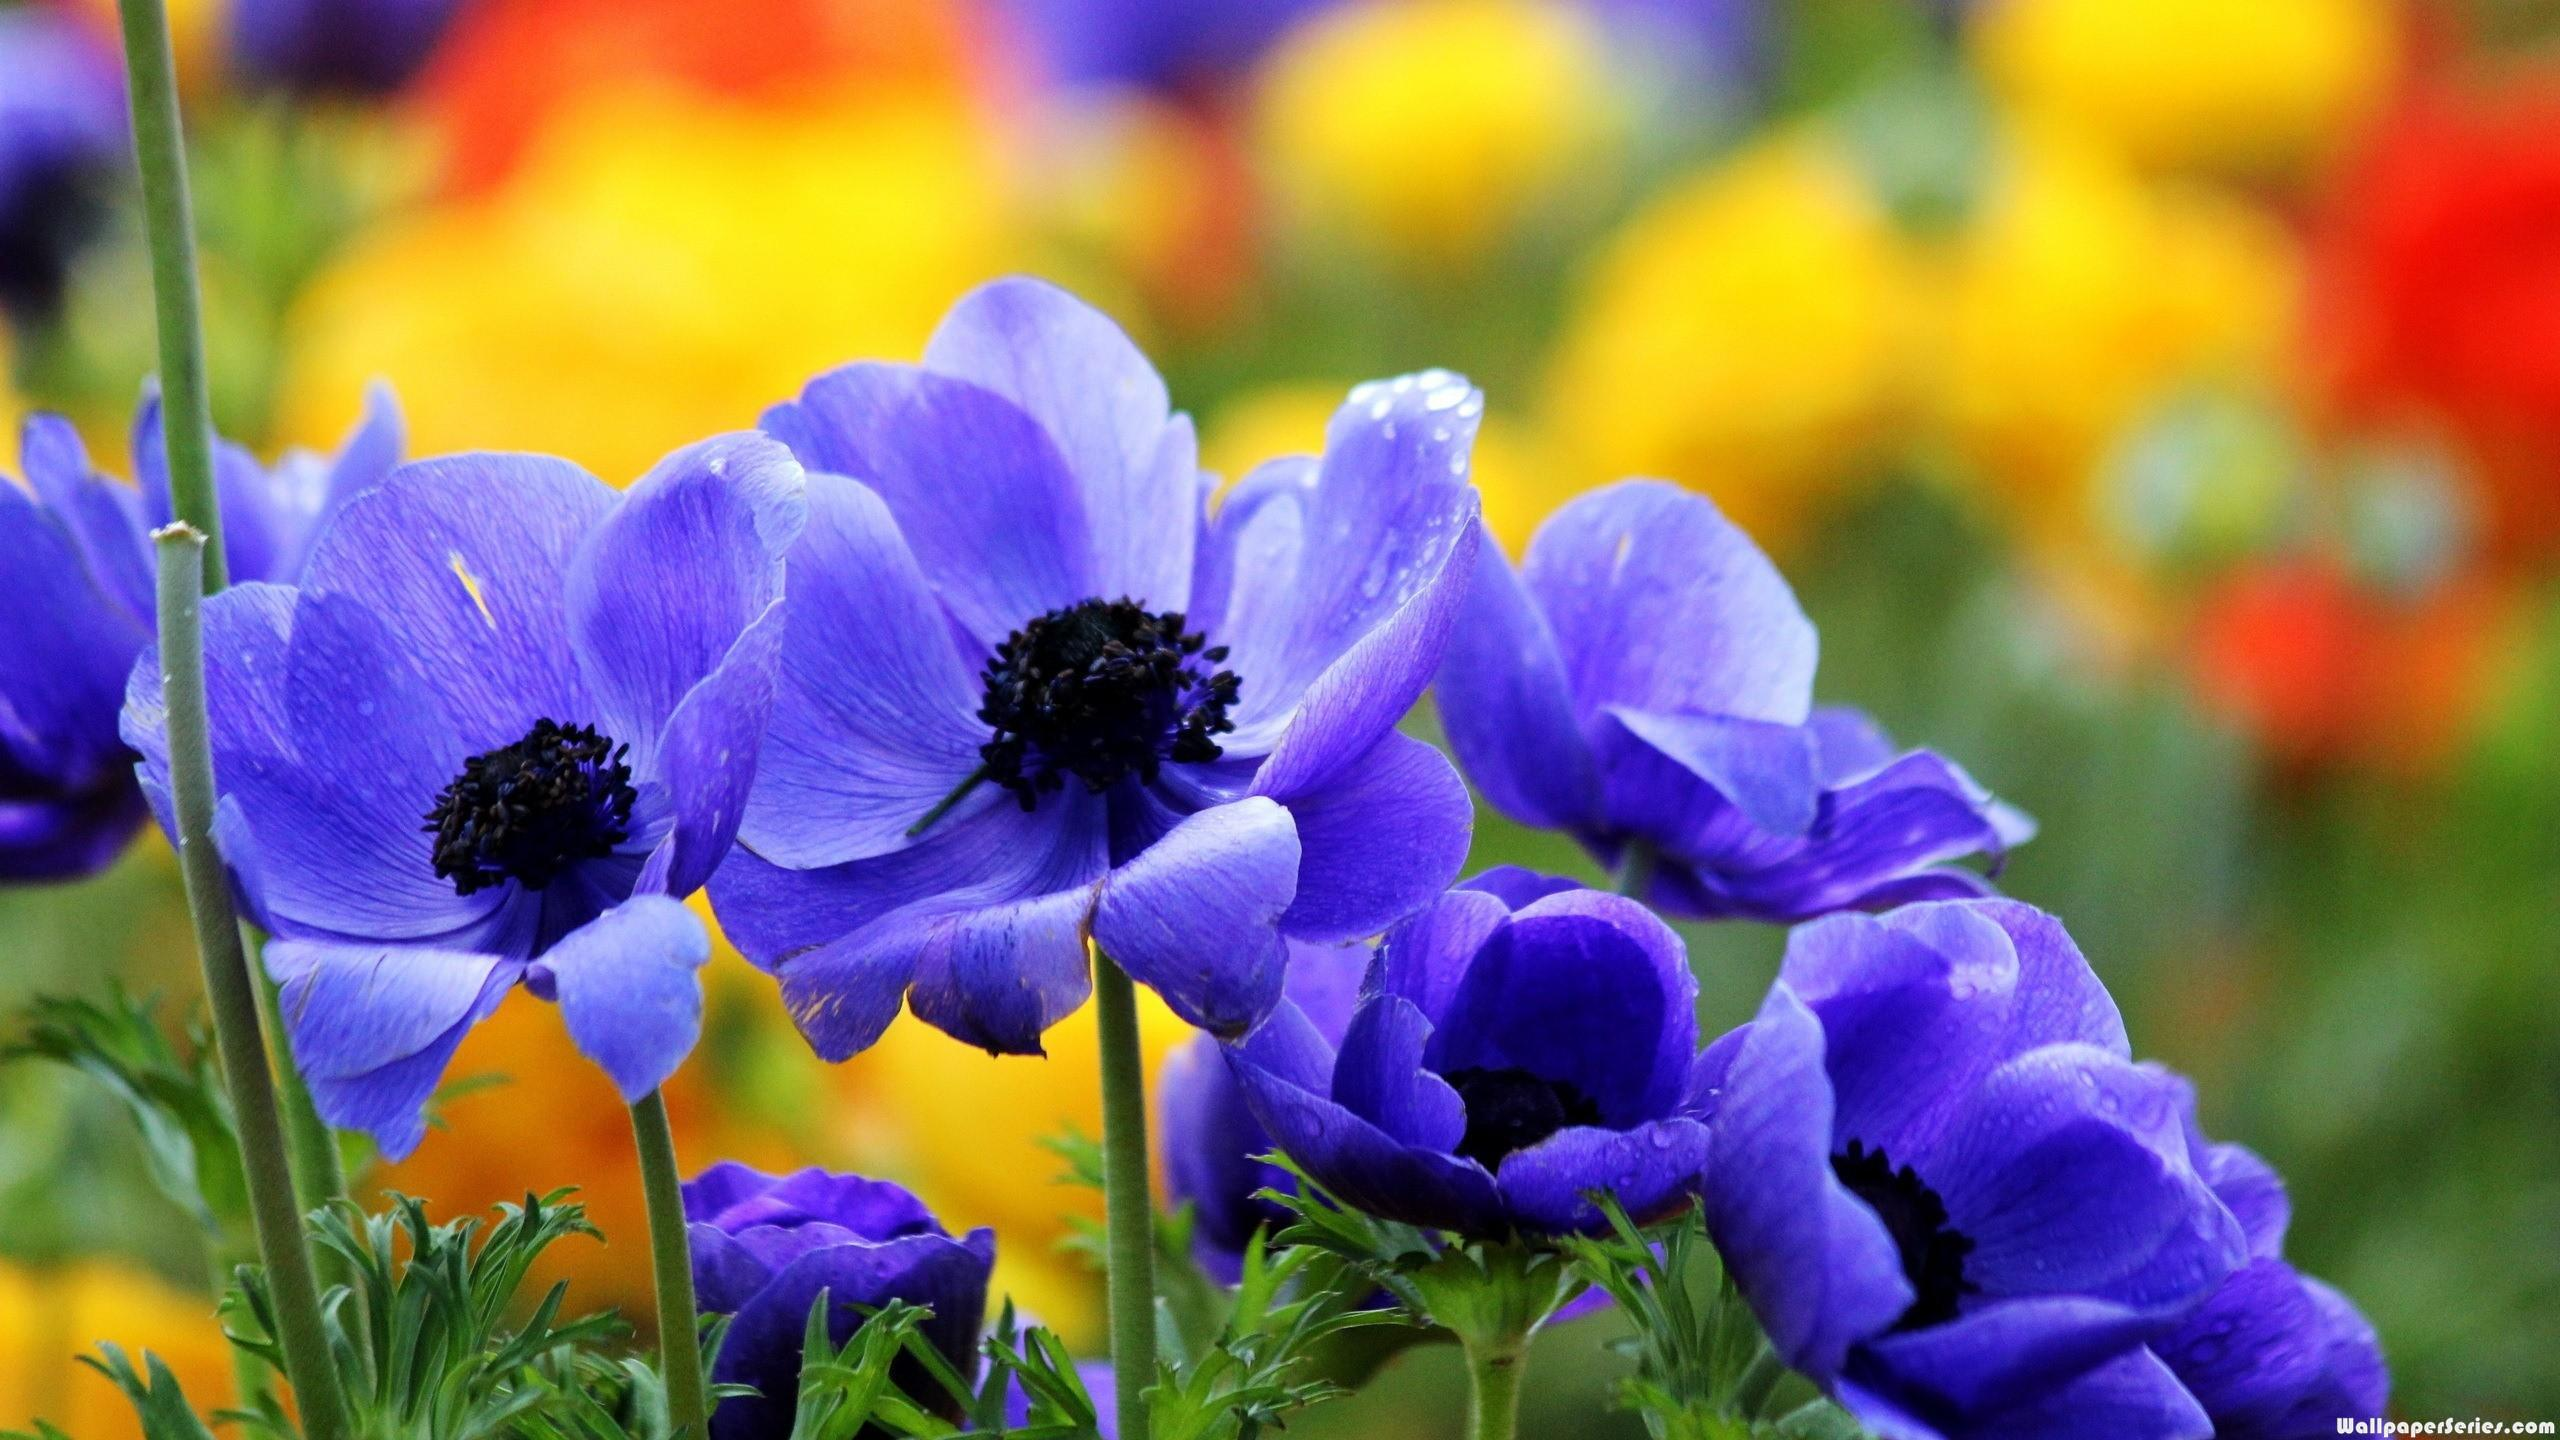 Wallpaper download full screen - Hd Pretty Flowers Fullscreen Wallpaper Download Free 140707